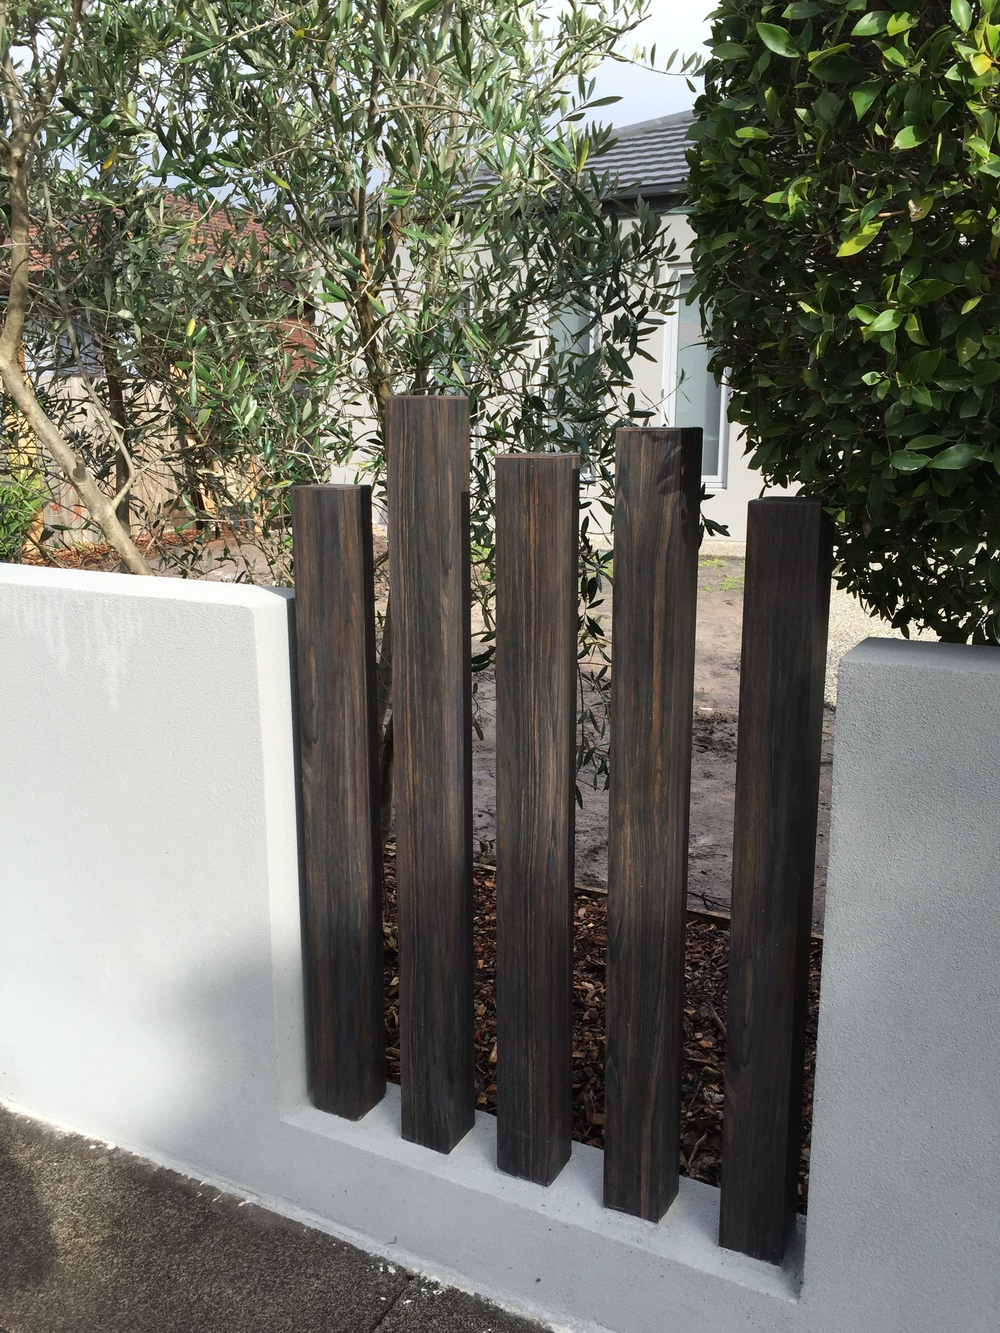 100 x 100 Ever Art Wood posts in Burakku Eboni. Design: Kihara Landscapes, Victoria.